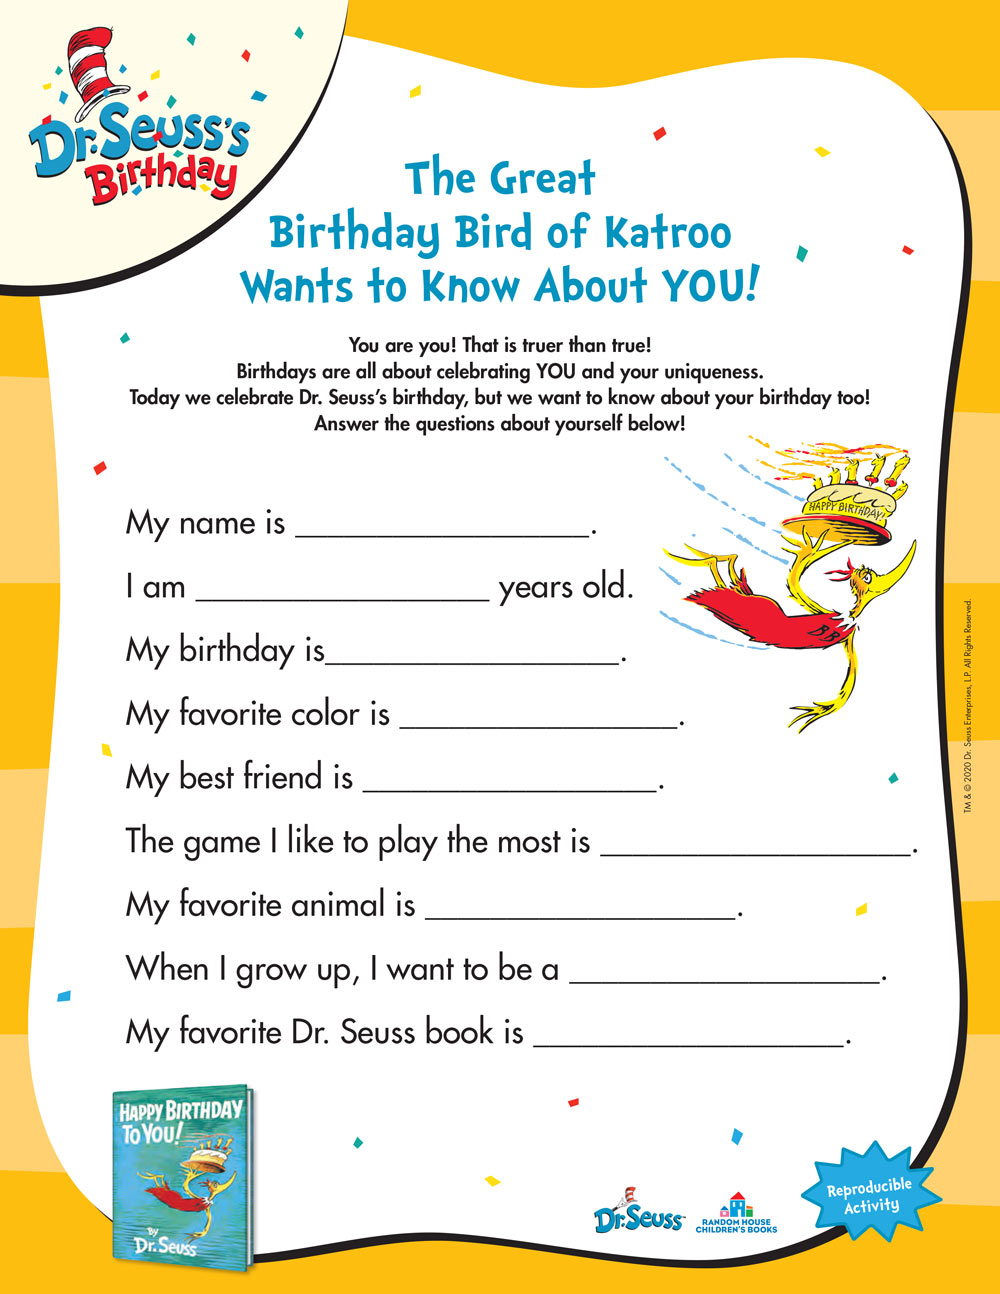 The Great Birthday Bird of Katroo Wants to Know About YOU!